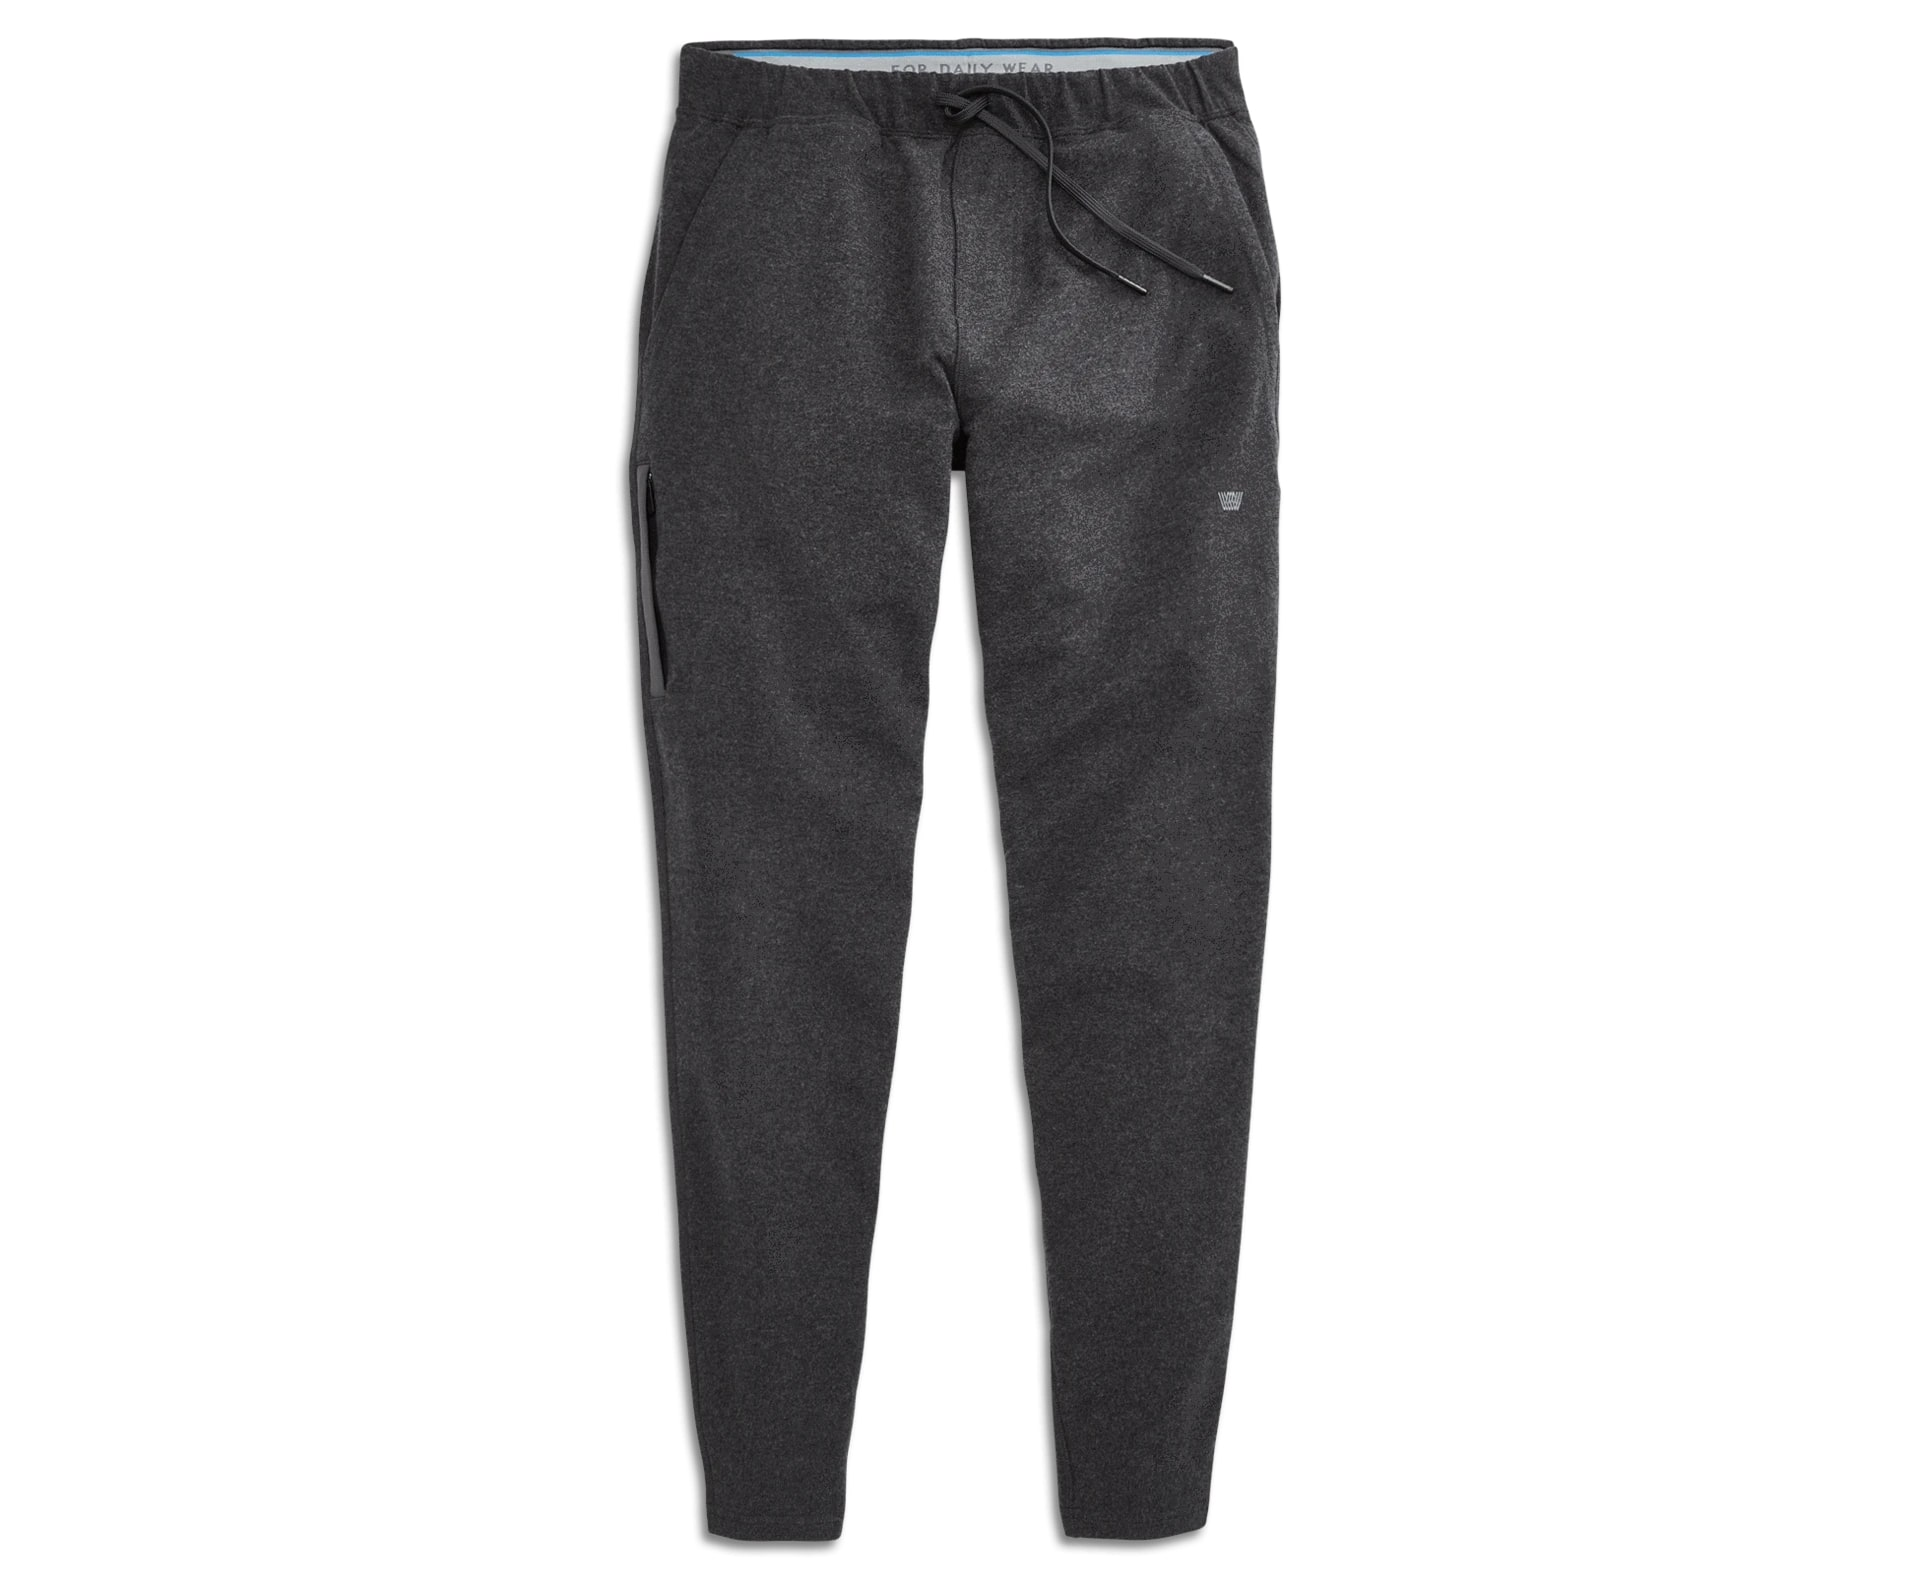 Mack Weldon Ace Sweatpant, best gift for boyfriend